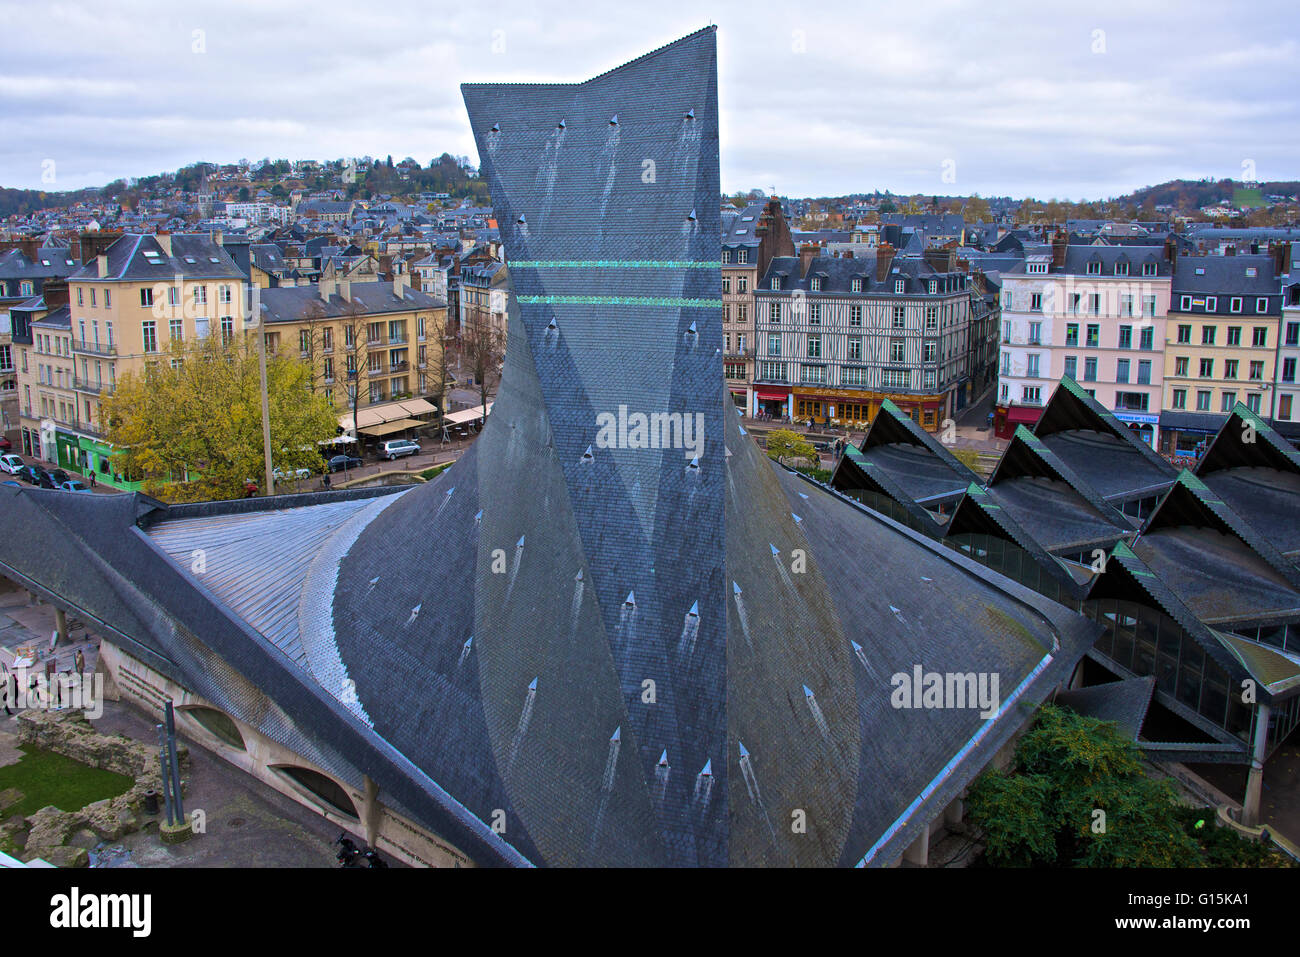 Joan of Arc church roof, and Ancient market place, Rouen, Normandy, France, Europe - Stock Image